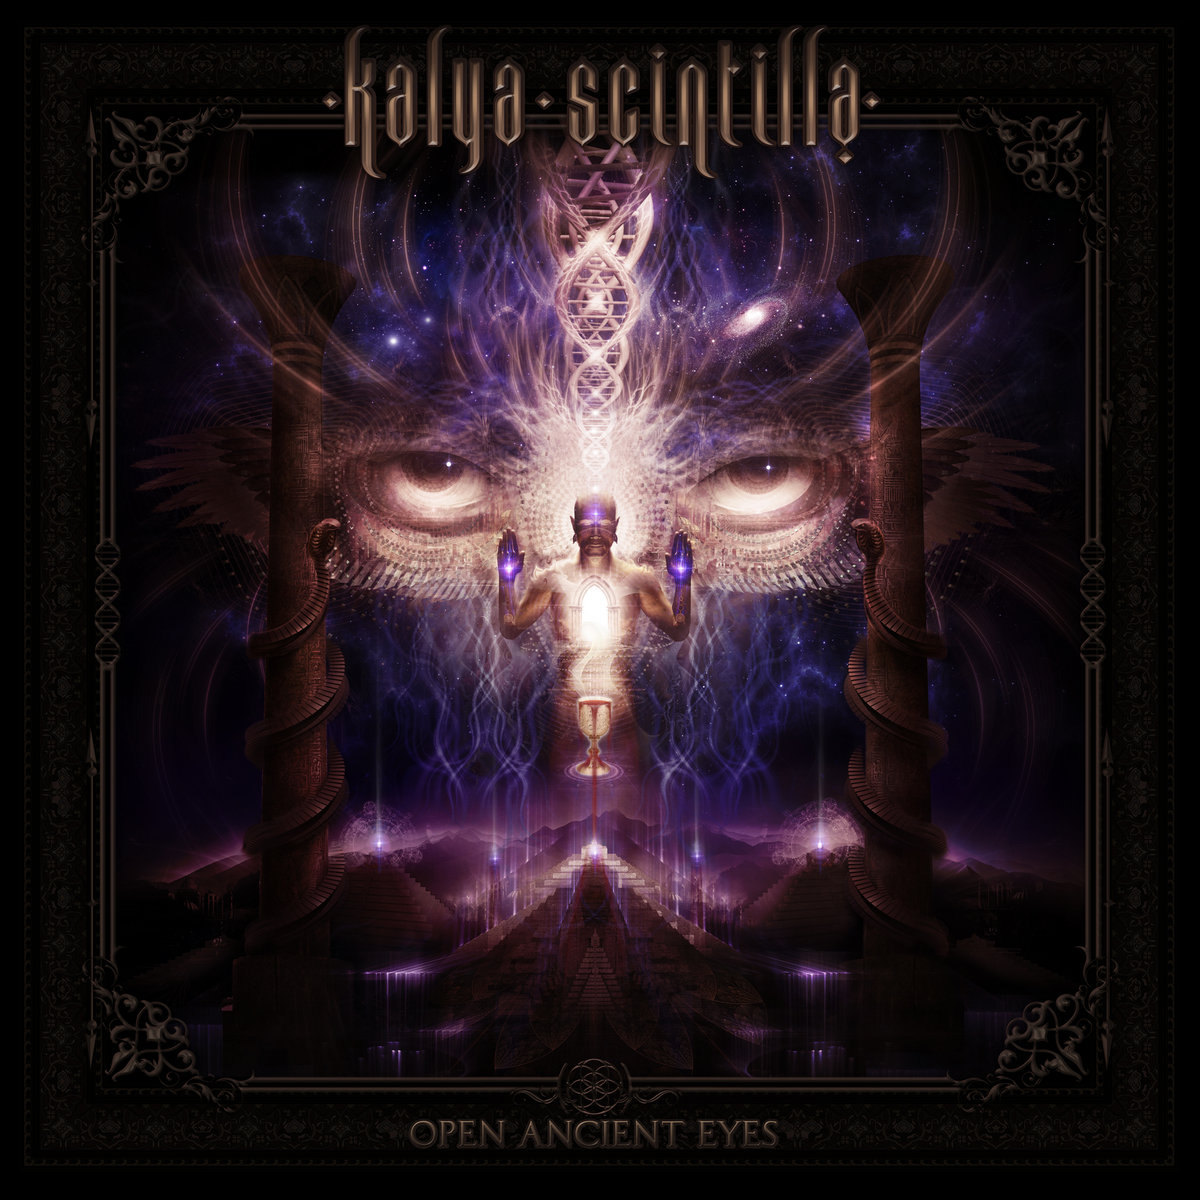 Kalya Scintilla - Scintillating Sands @ 'Open Ancient Eyes' album (432hz, electronic)